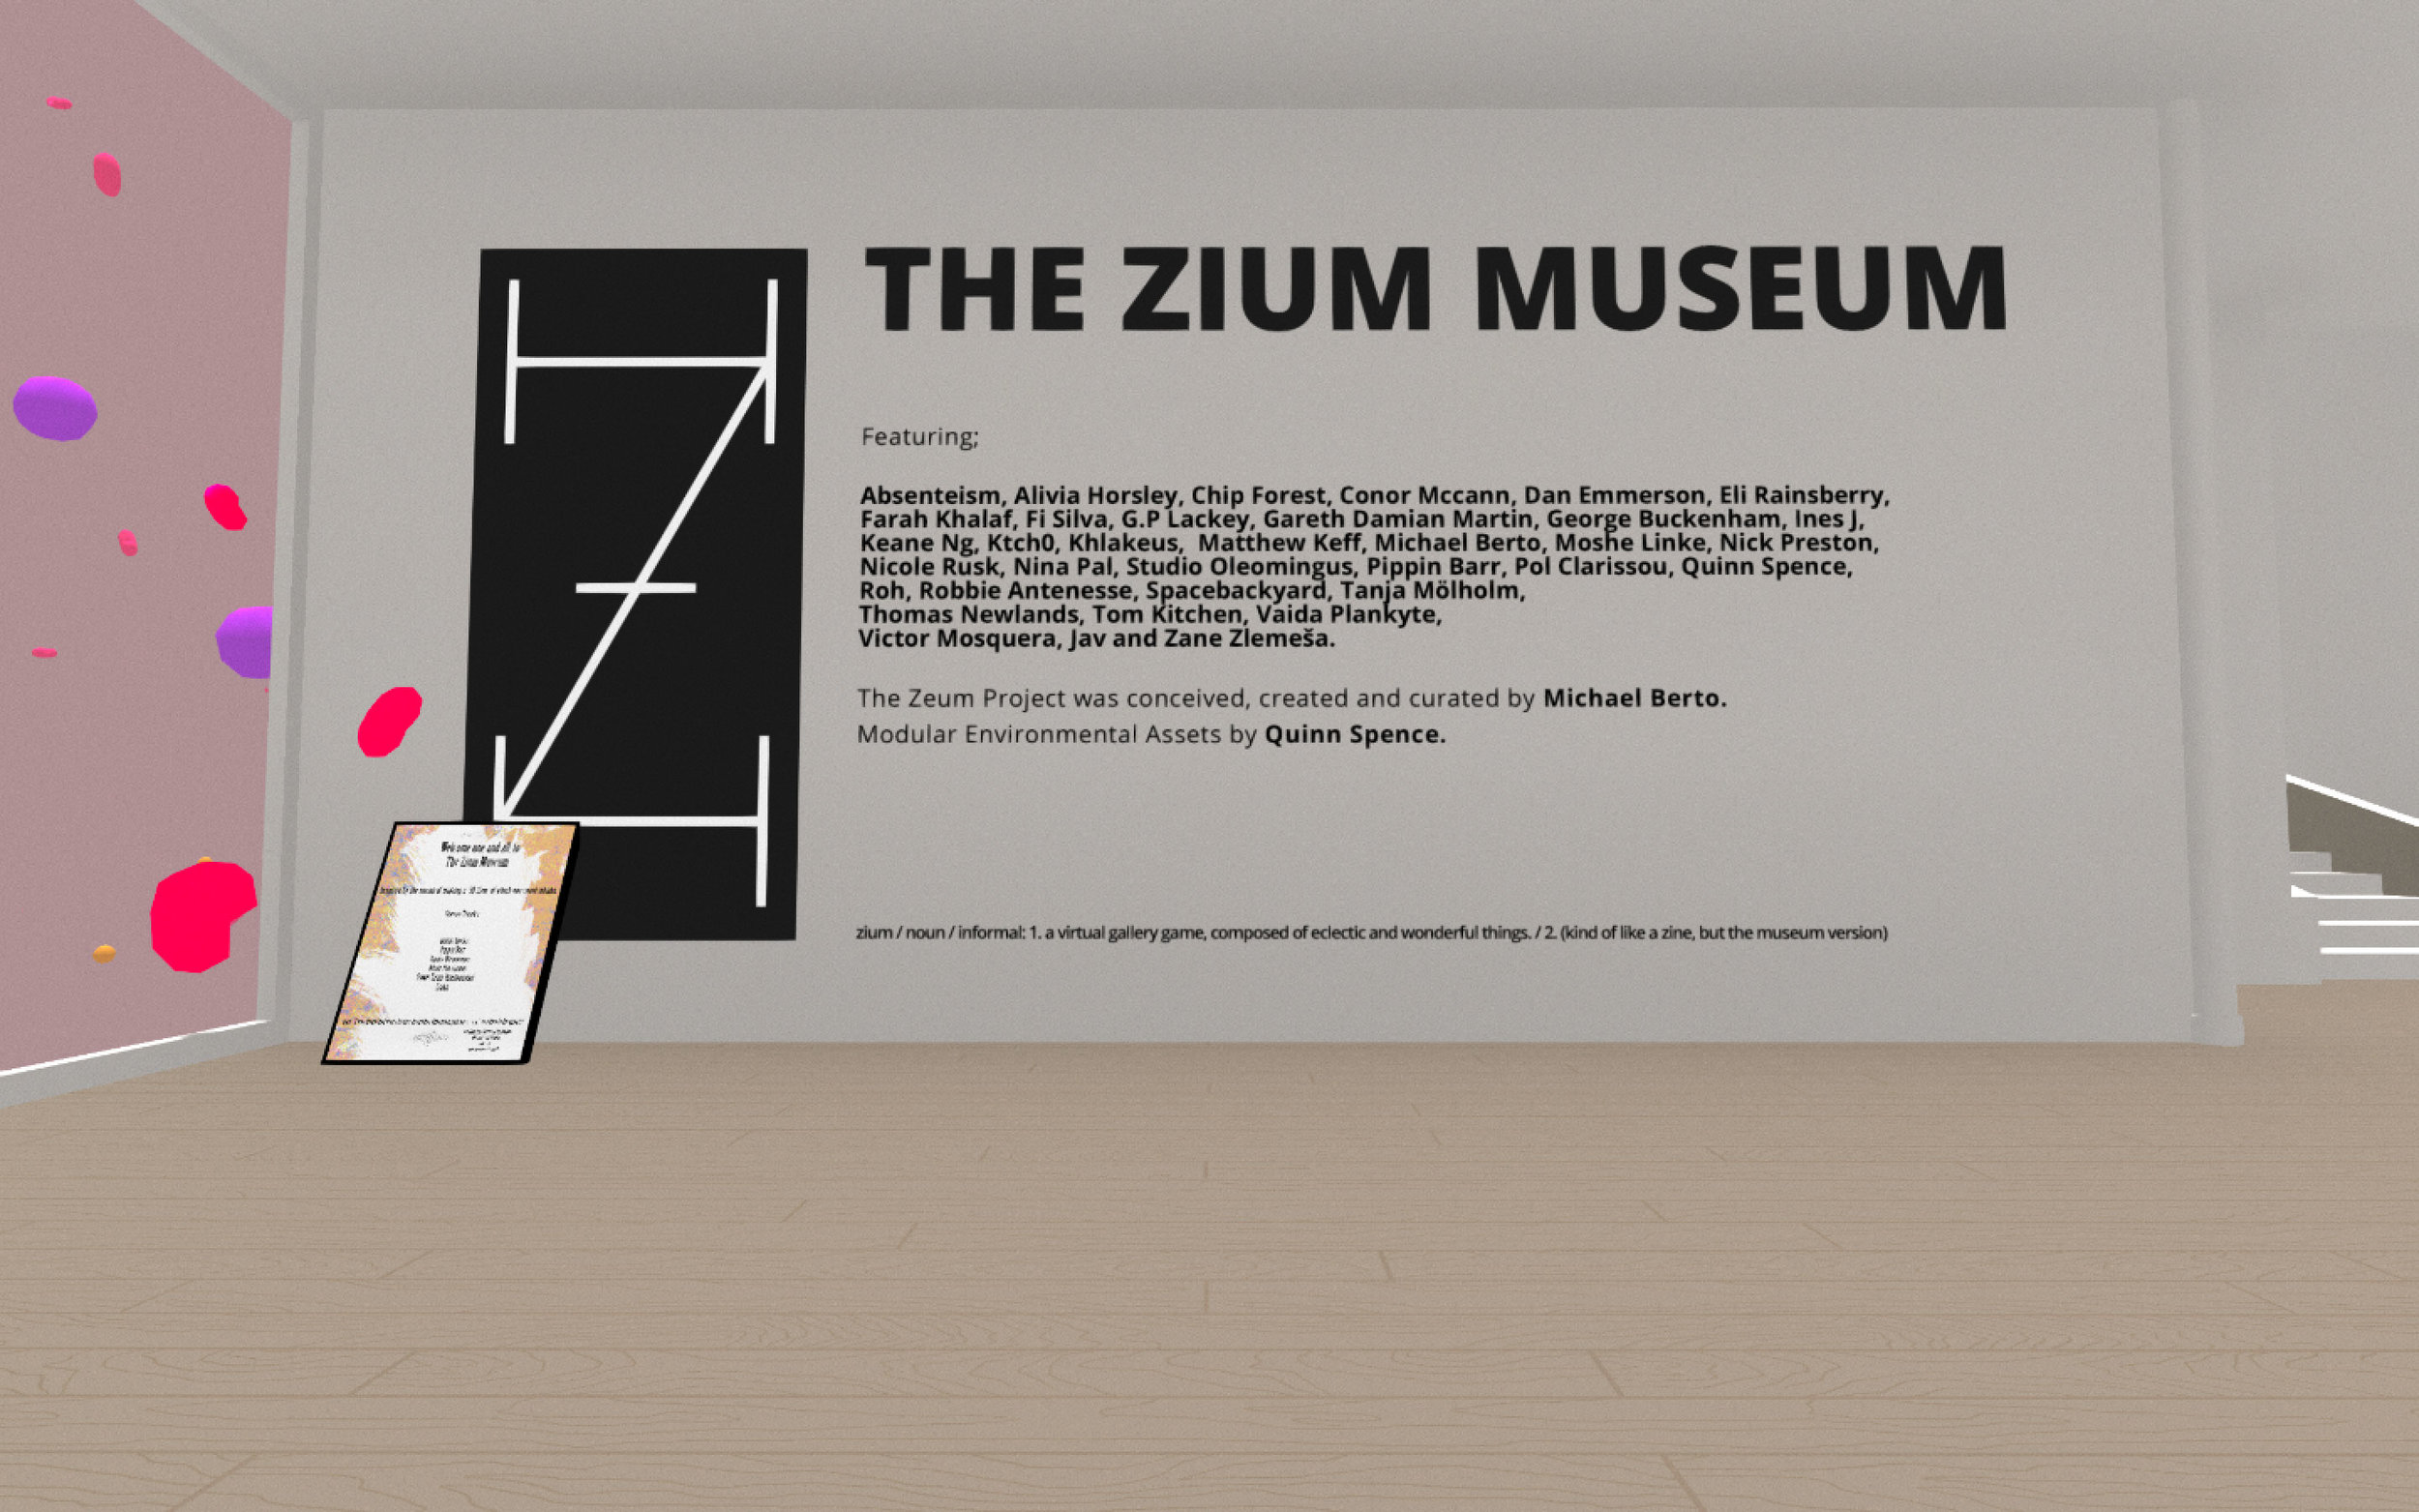 The Zium Museum  , 2017   M ade with the affordance of a creative and philosophical global collaboration. It was conceived, created and curated by Michael Berto with modular environmental design by Quinn Spence.   zium / noun / informal: 1. a virtual gallery game, composed of eclectic and wonderful things.  2. (kind of like a zine, but the museum version)   [ Download it here. ]